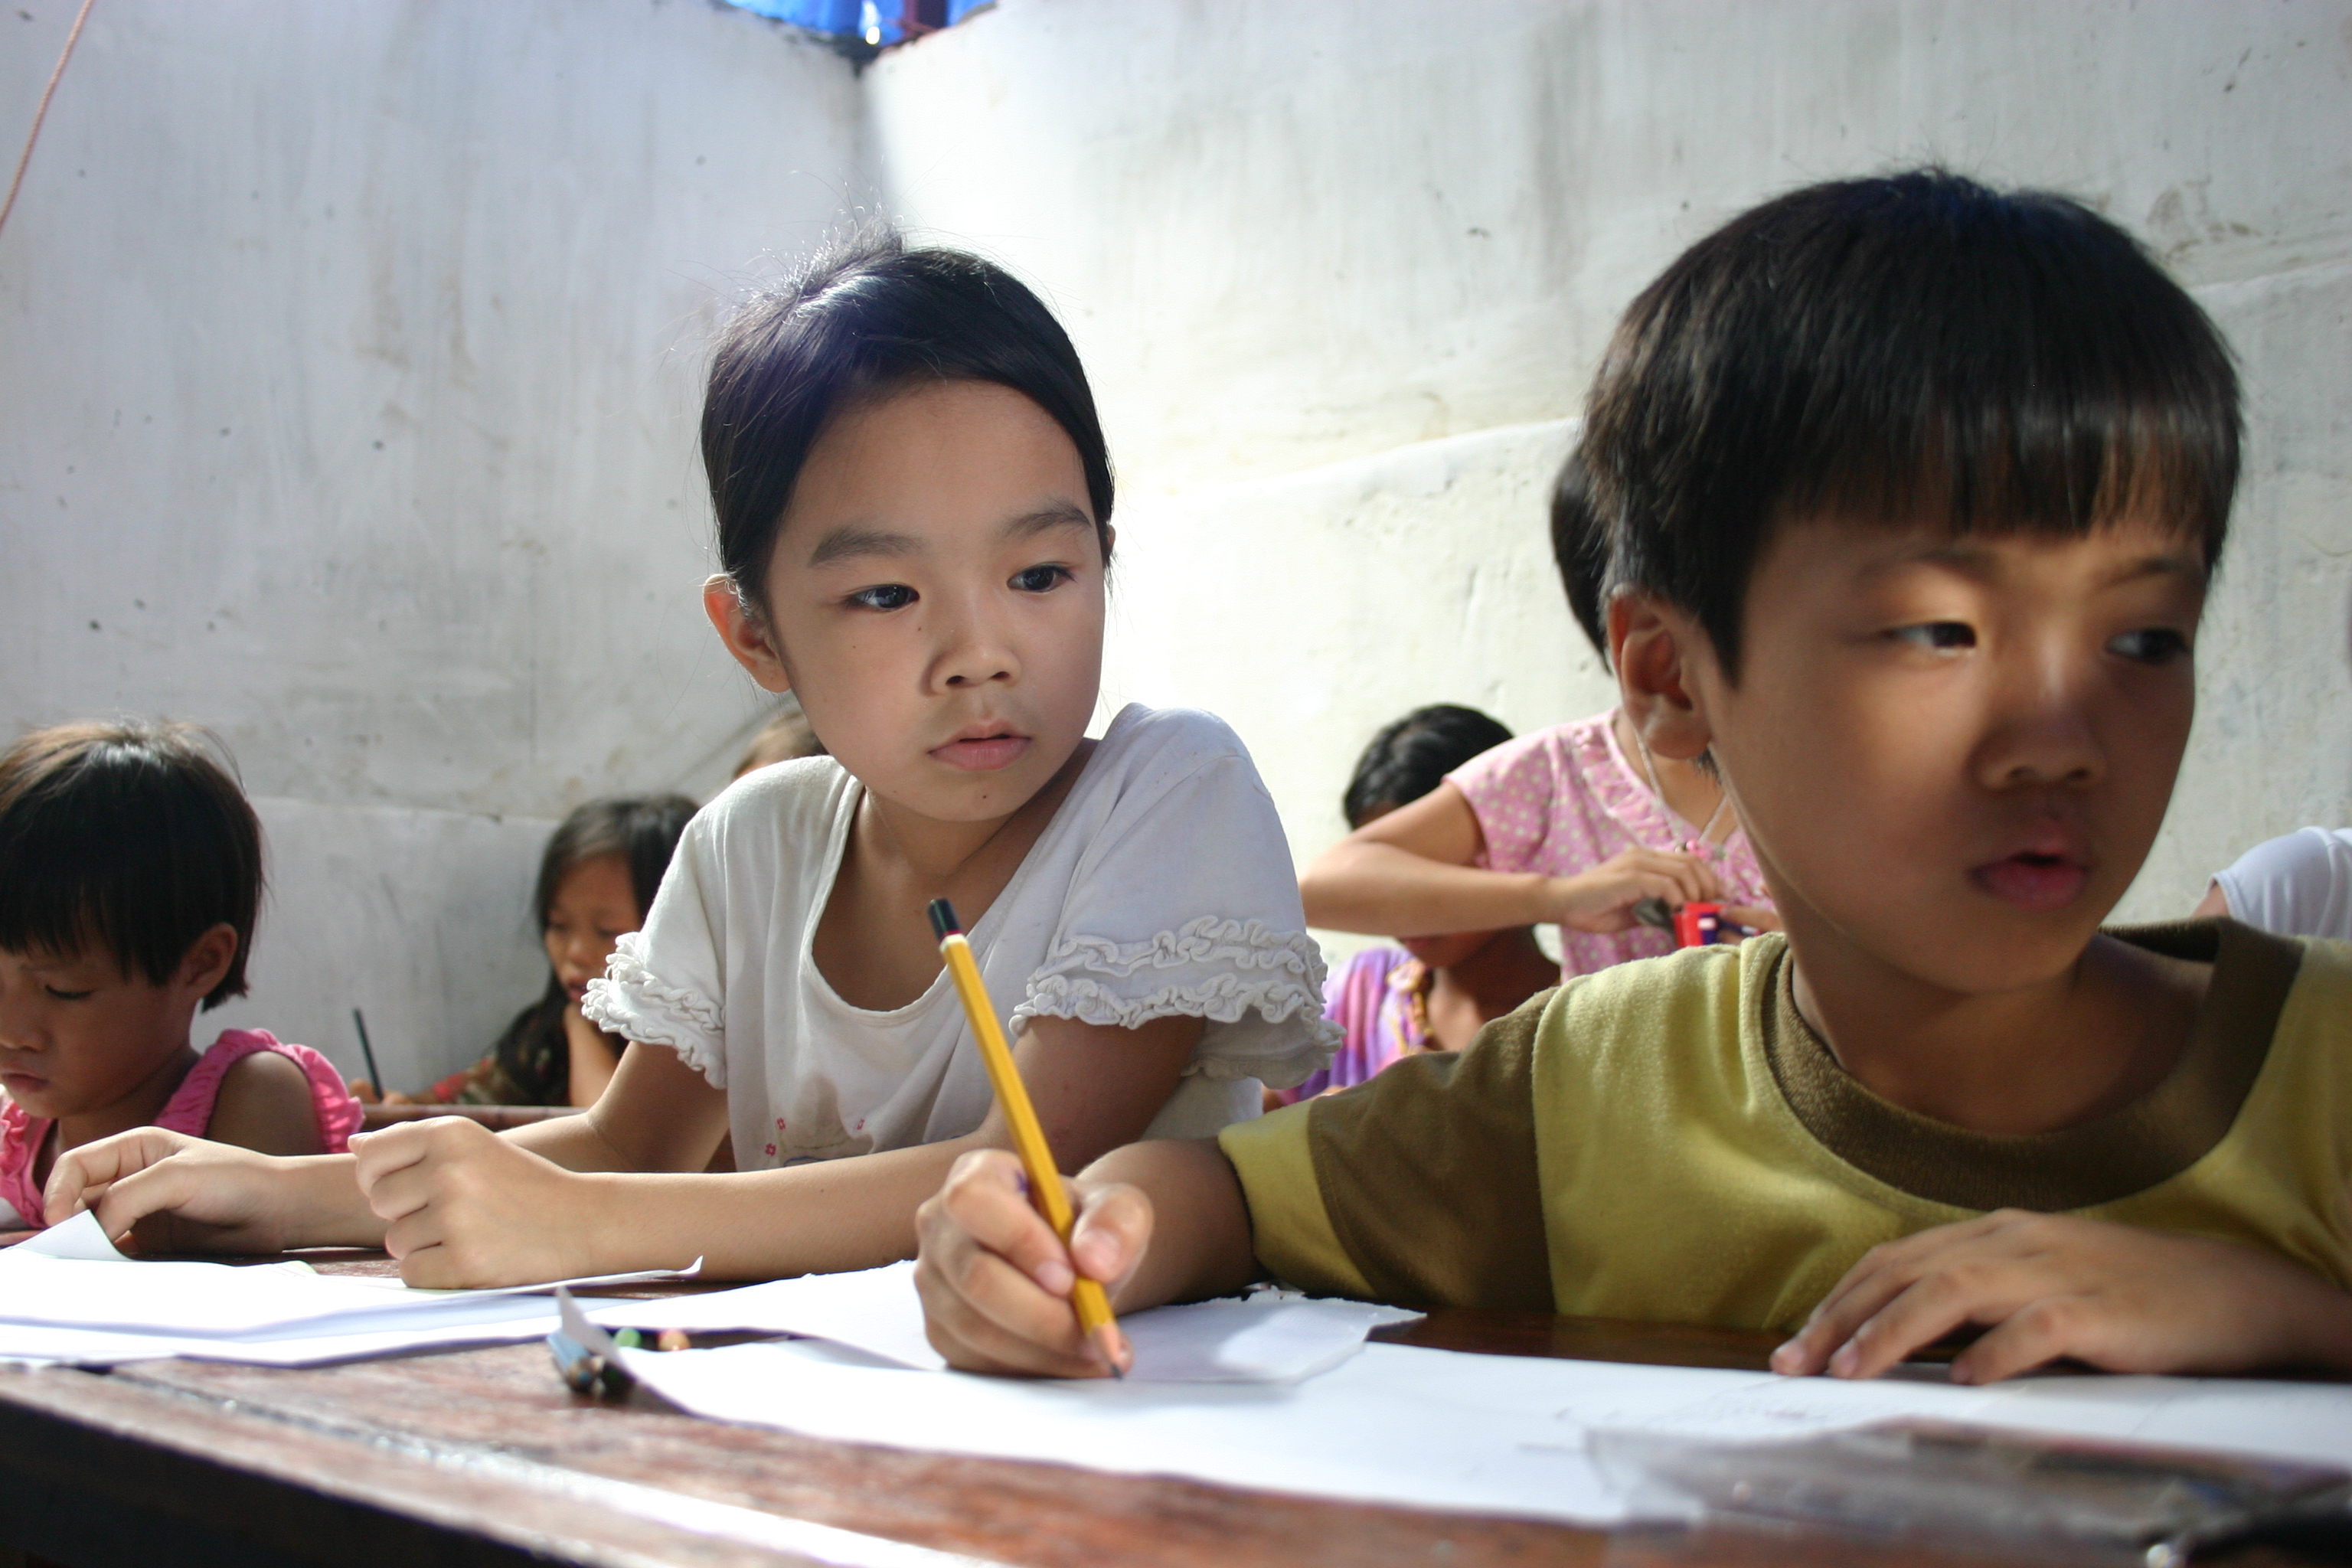 volunteer project: Interacting with disadvantaged children at Youth Center photo 3